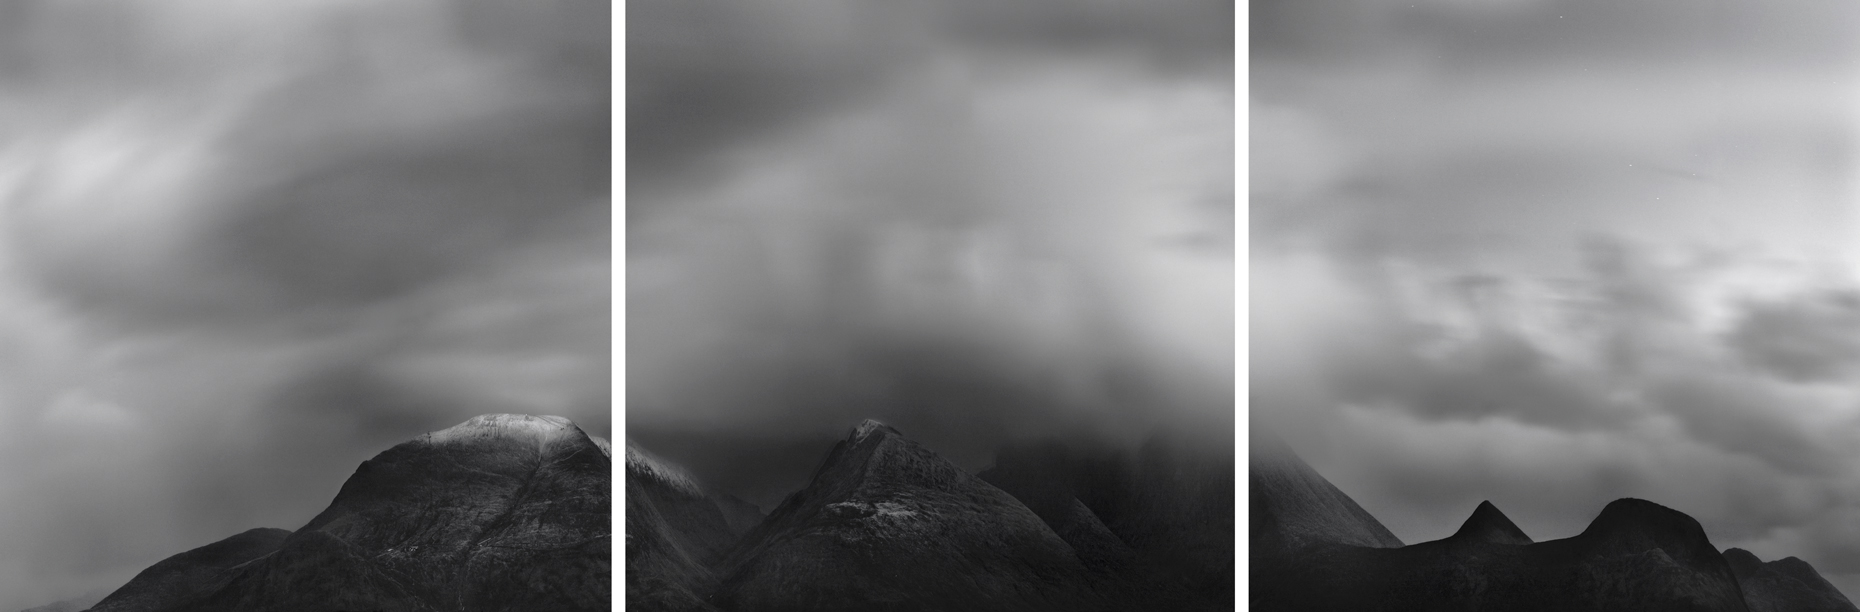 Jon Wyatt Photography - Ben Nevis and Aanoch Mor, Fort William, Scotland.  Site of 4 fatalities in an avalanche in 1998.